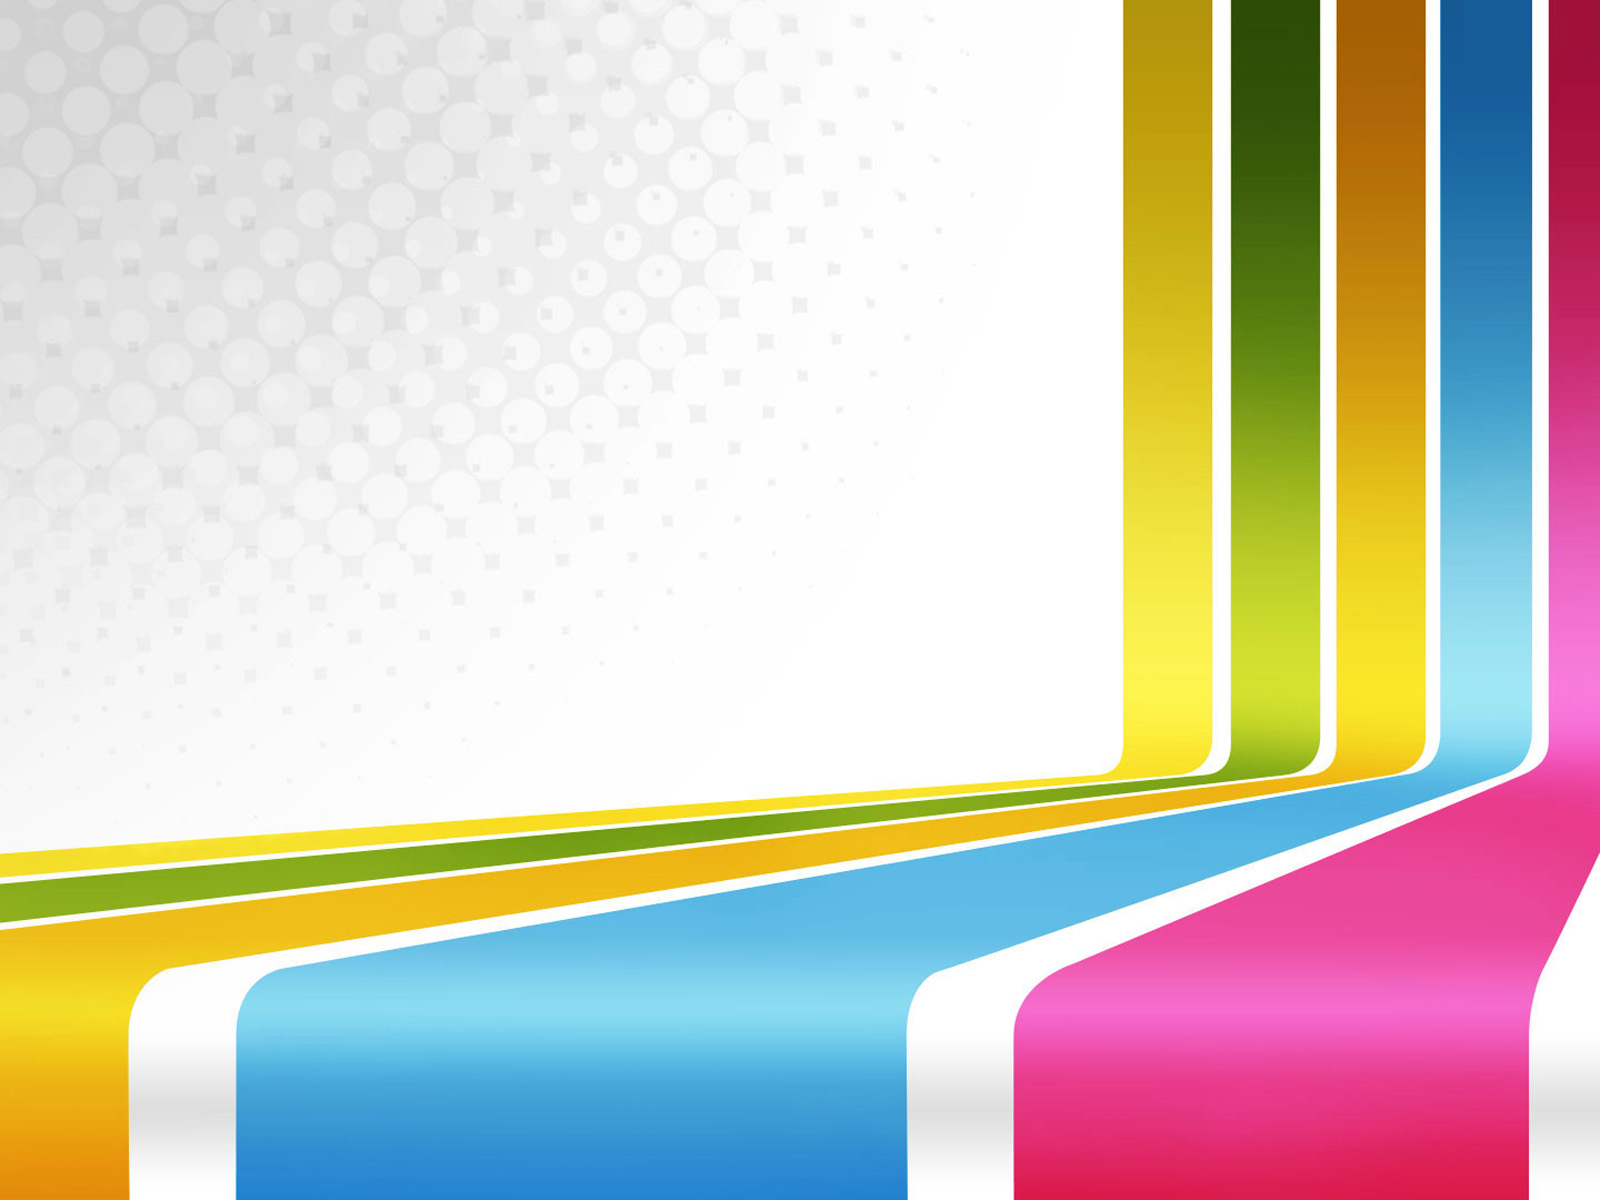 Powerpoint Background Graphics Free Download